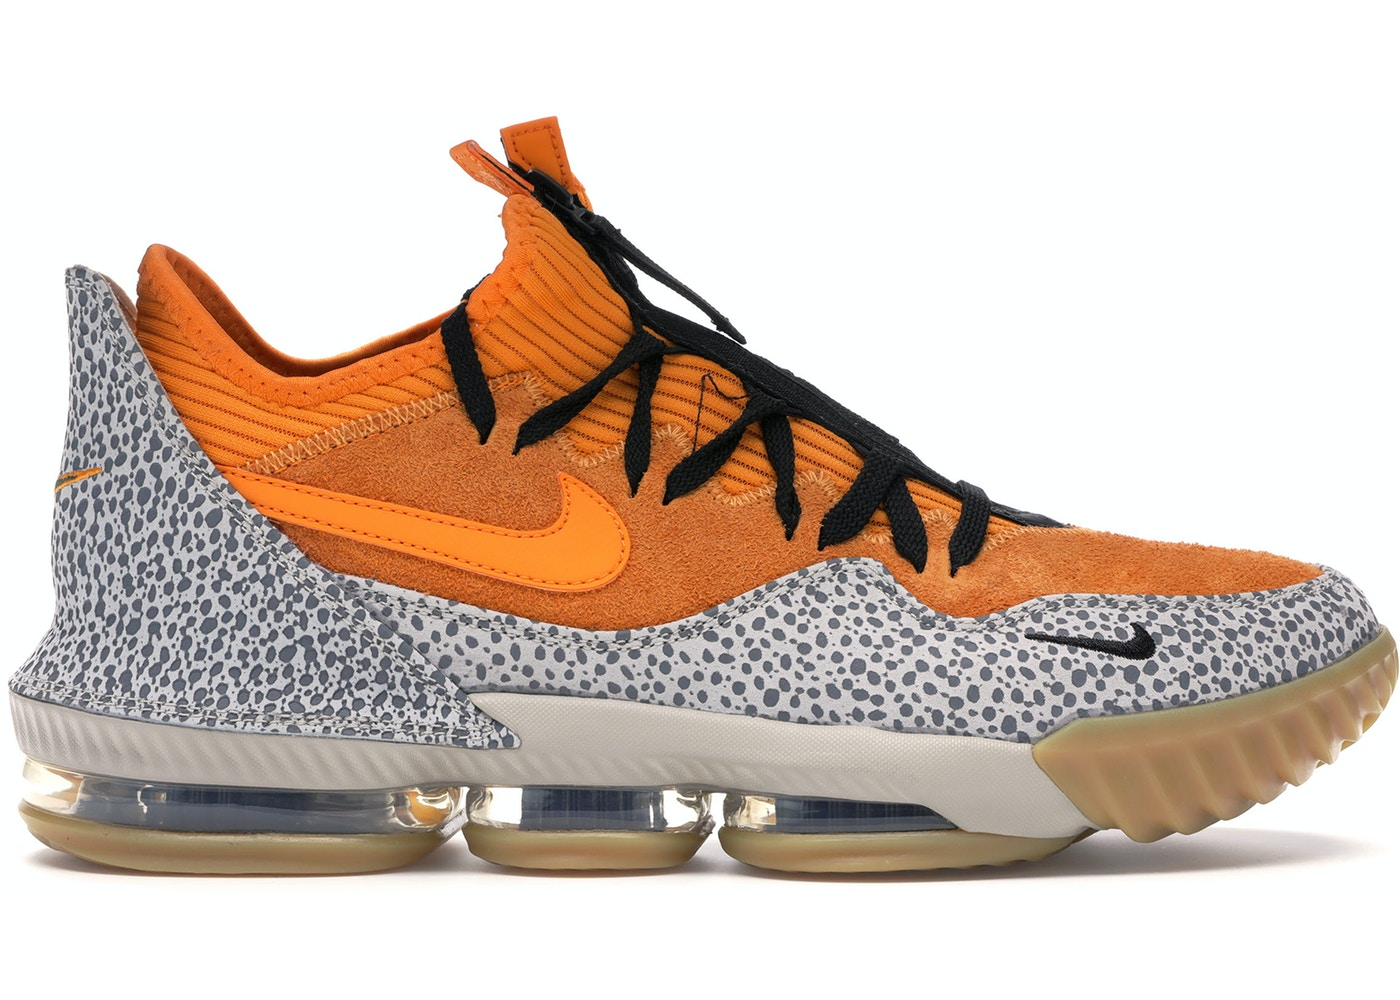 the best attitude 32c49 7c62c LeBron 16 Low Atmos Safari - CD9471-800 CI3358-800